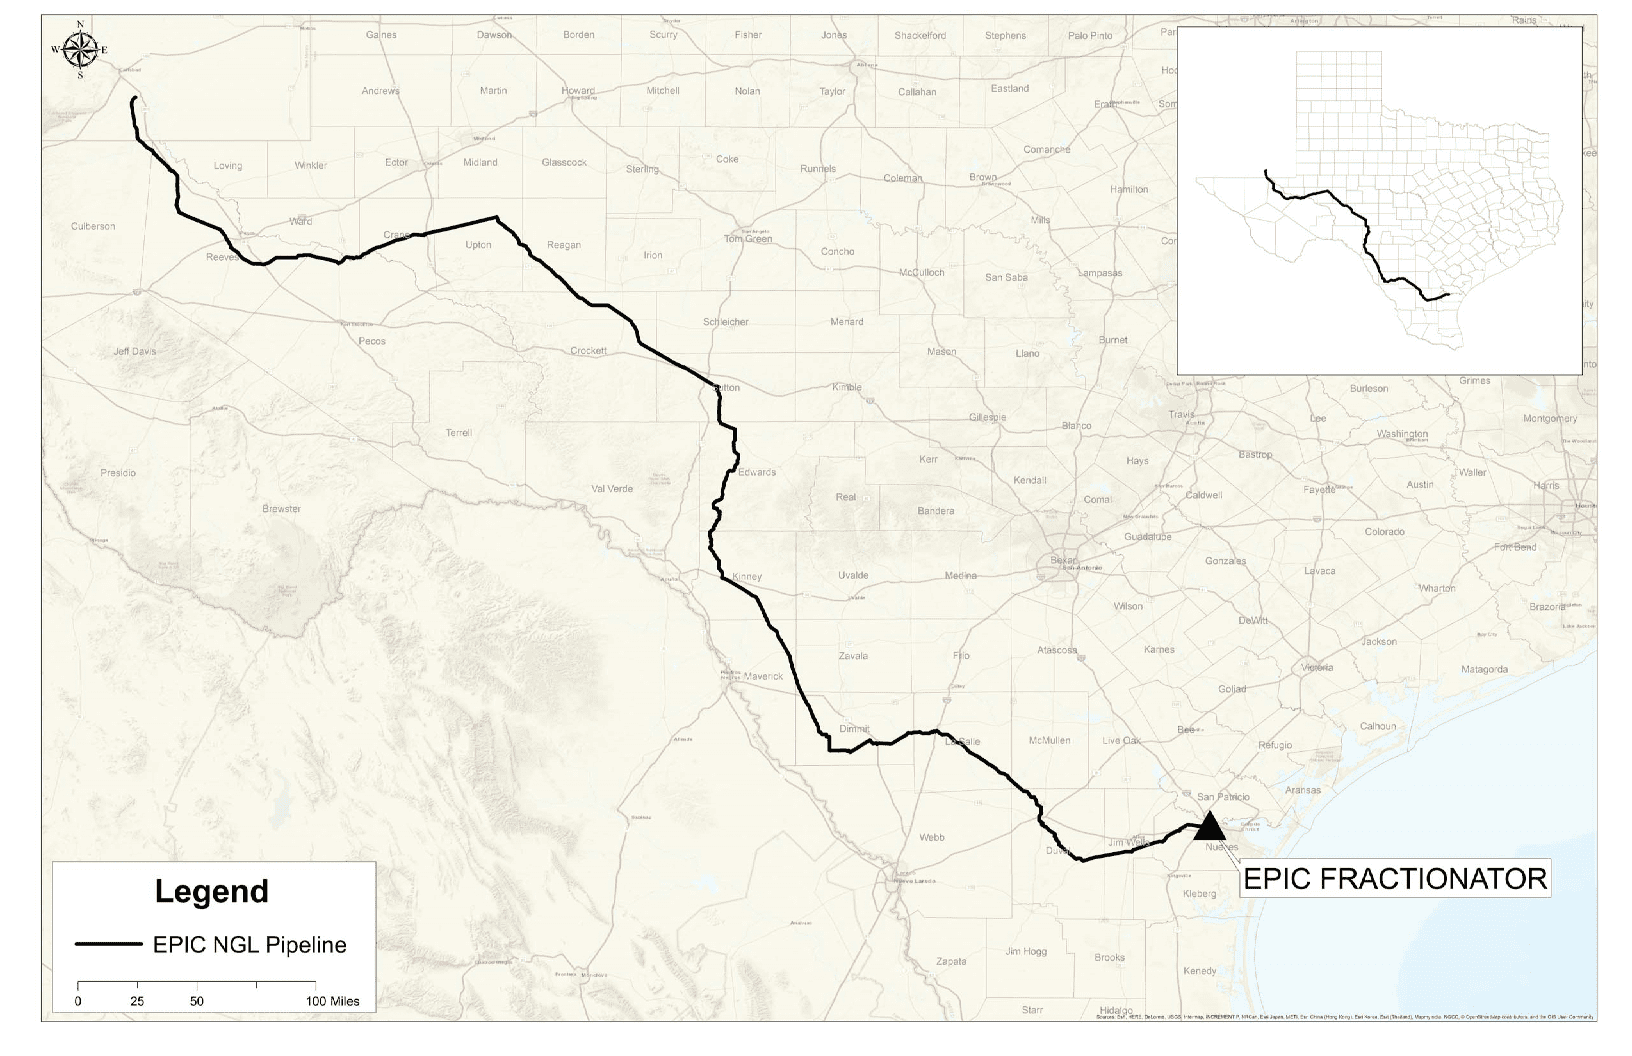 Epic Pipeline Announces Capacity Agreement With BP Energy Company For New 650-Mile NGL Pipeline From The Permian Basin To Corpus Christi